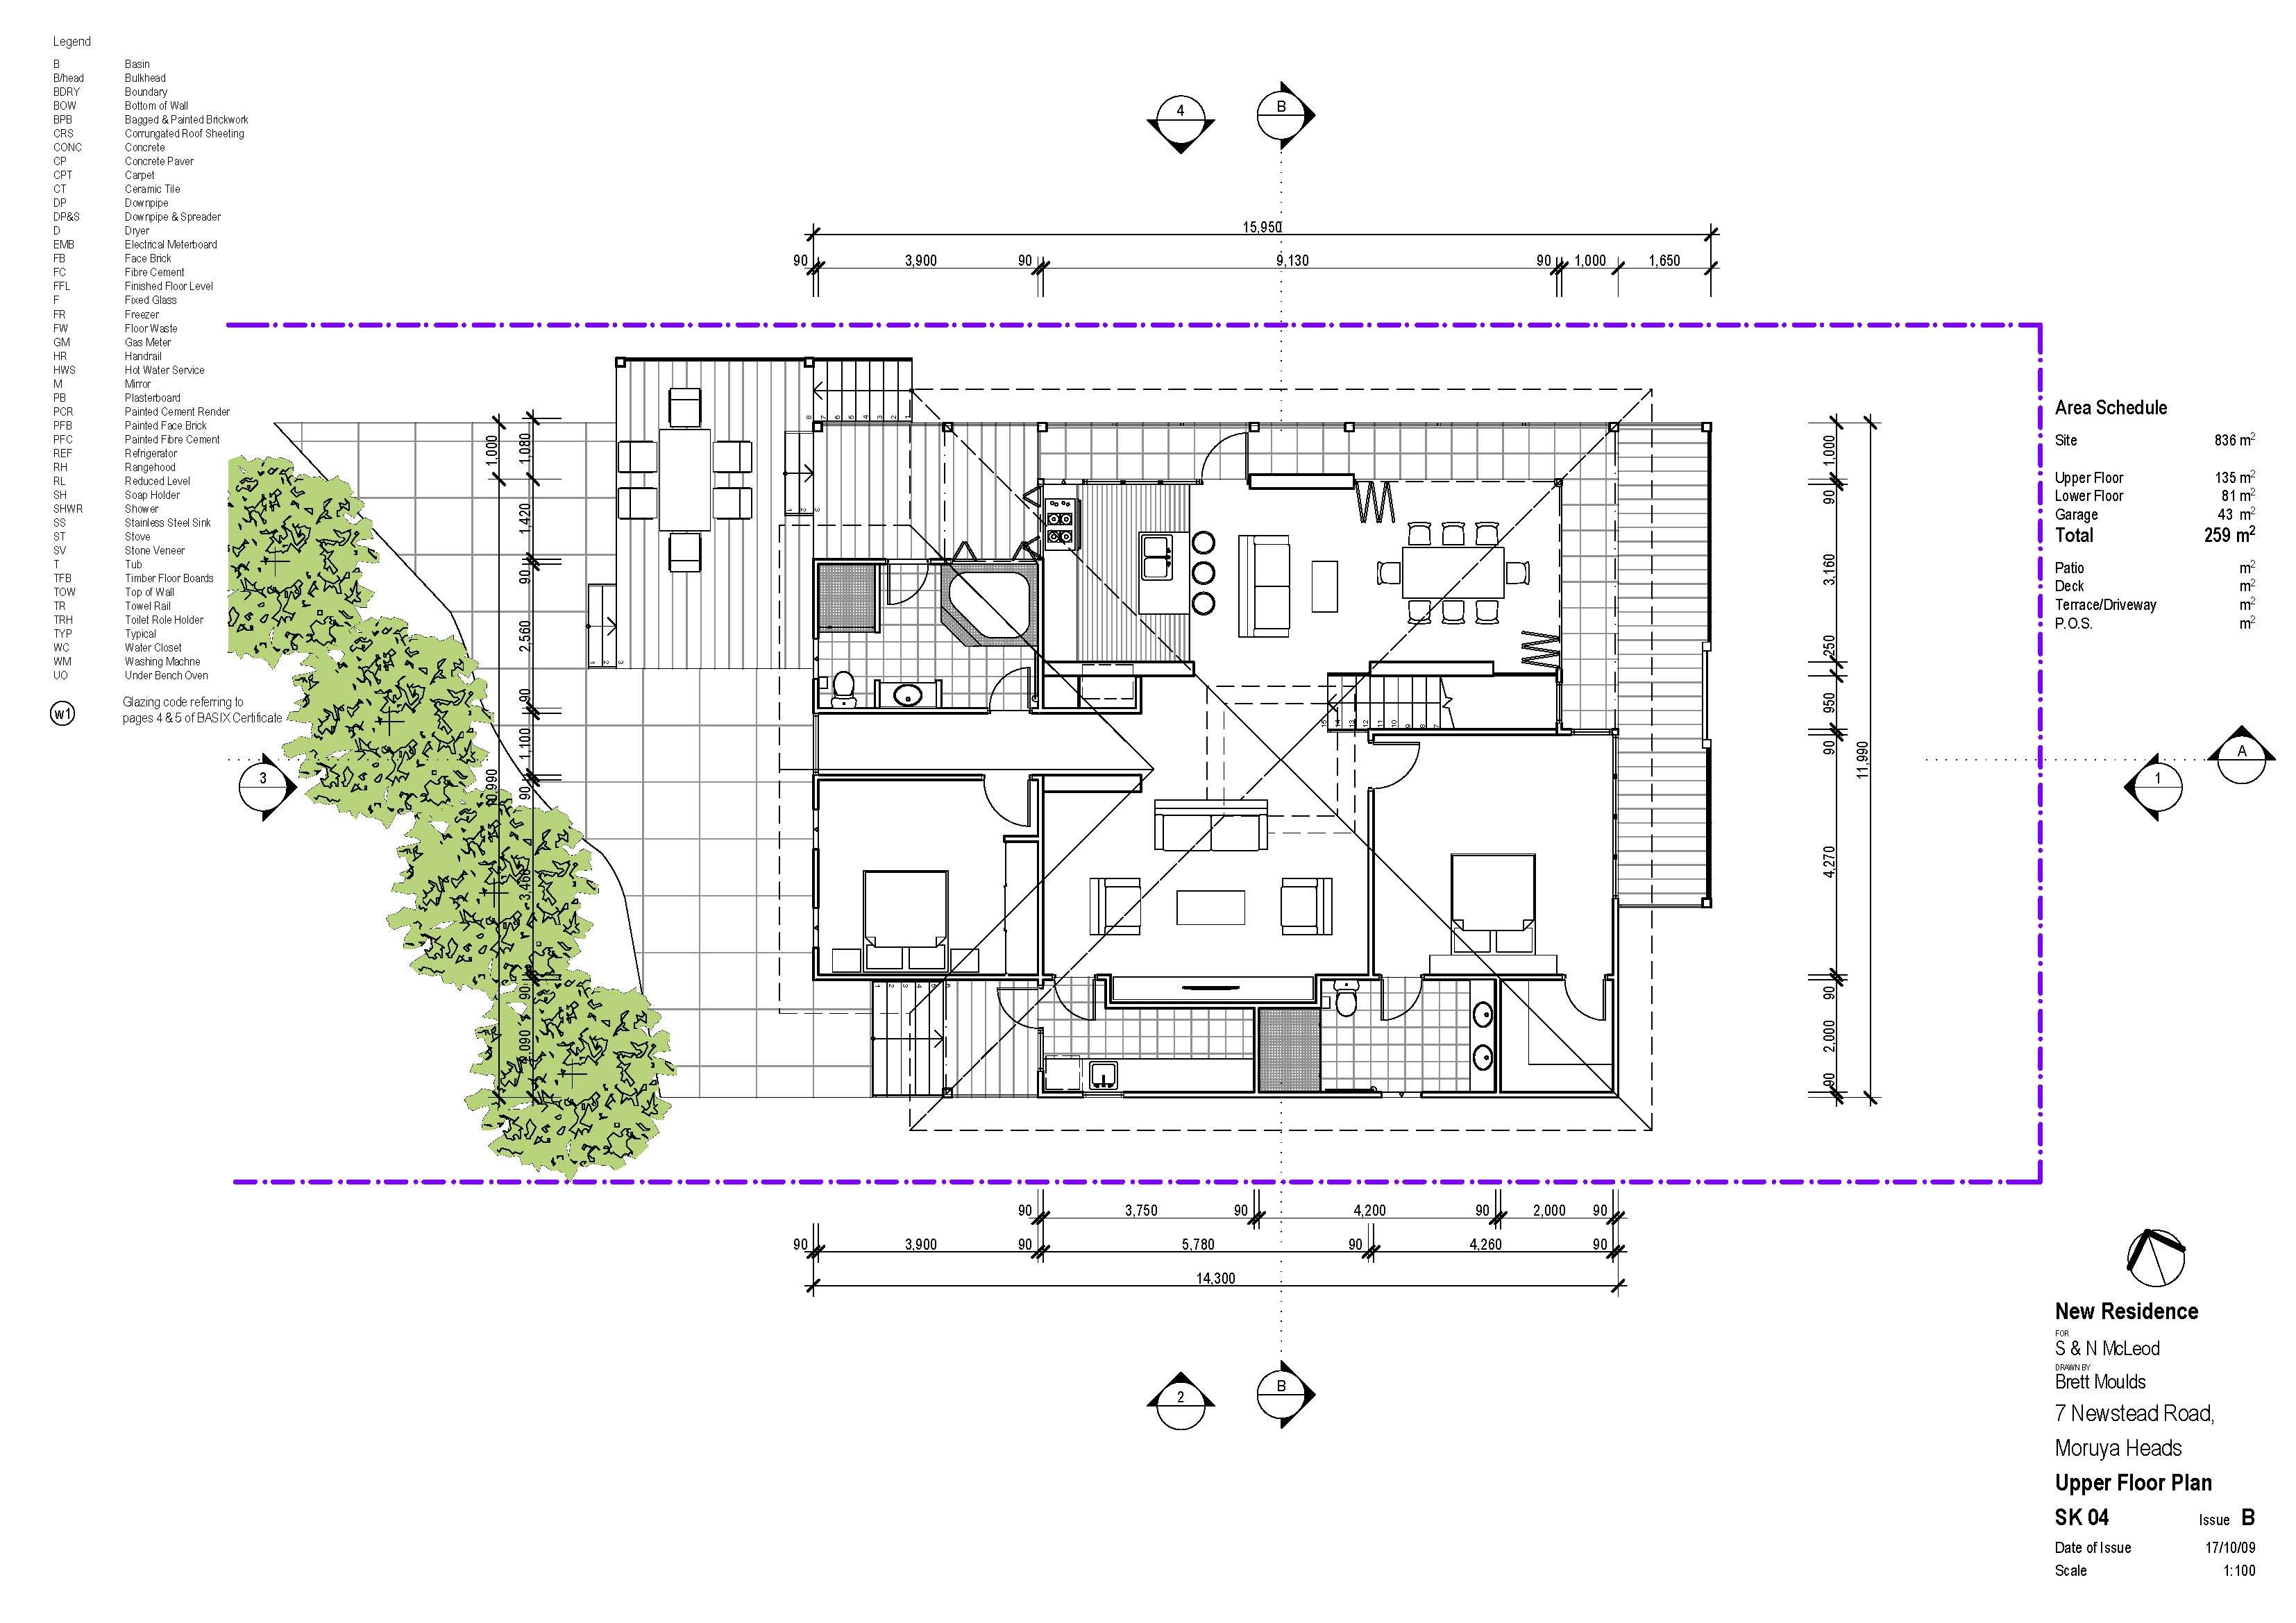 House Plan Autocad Hvac Service Drawing In Architectural Cad Drawings Services Drafting 3308x2339